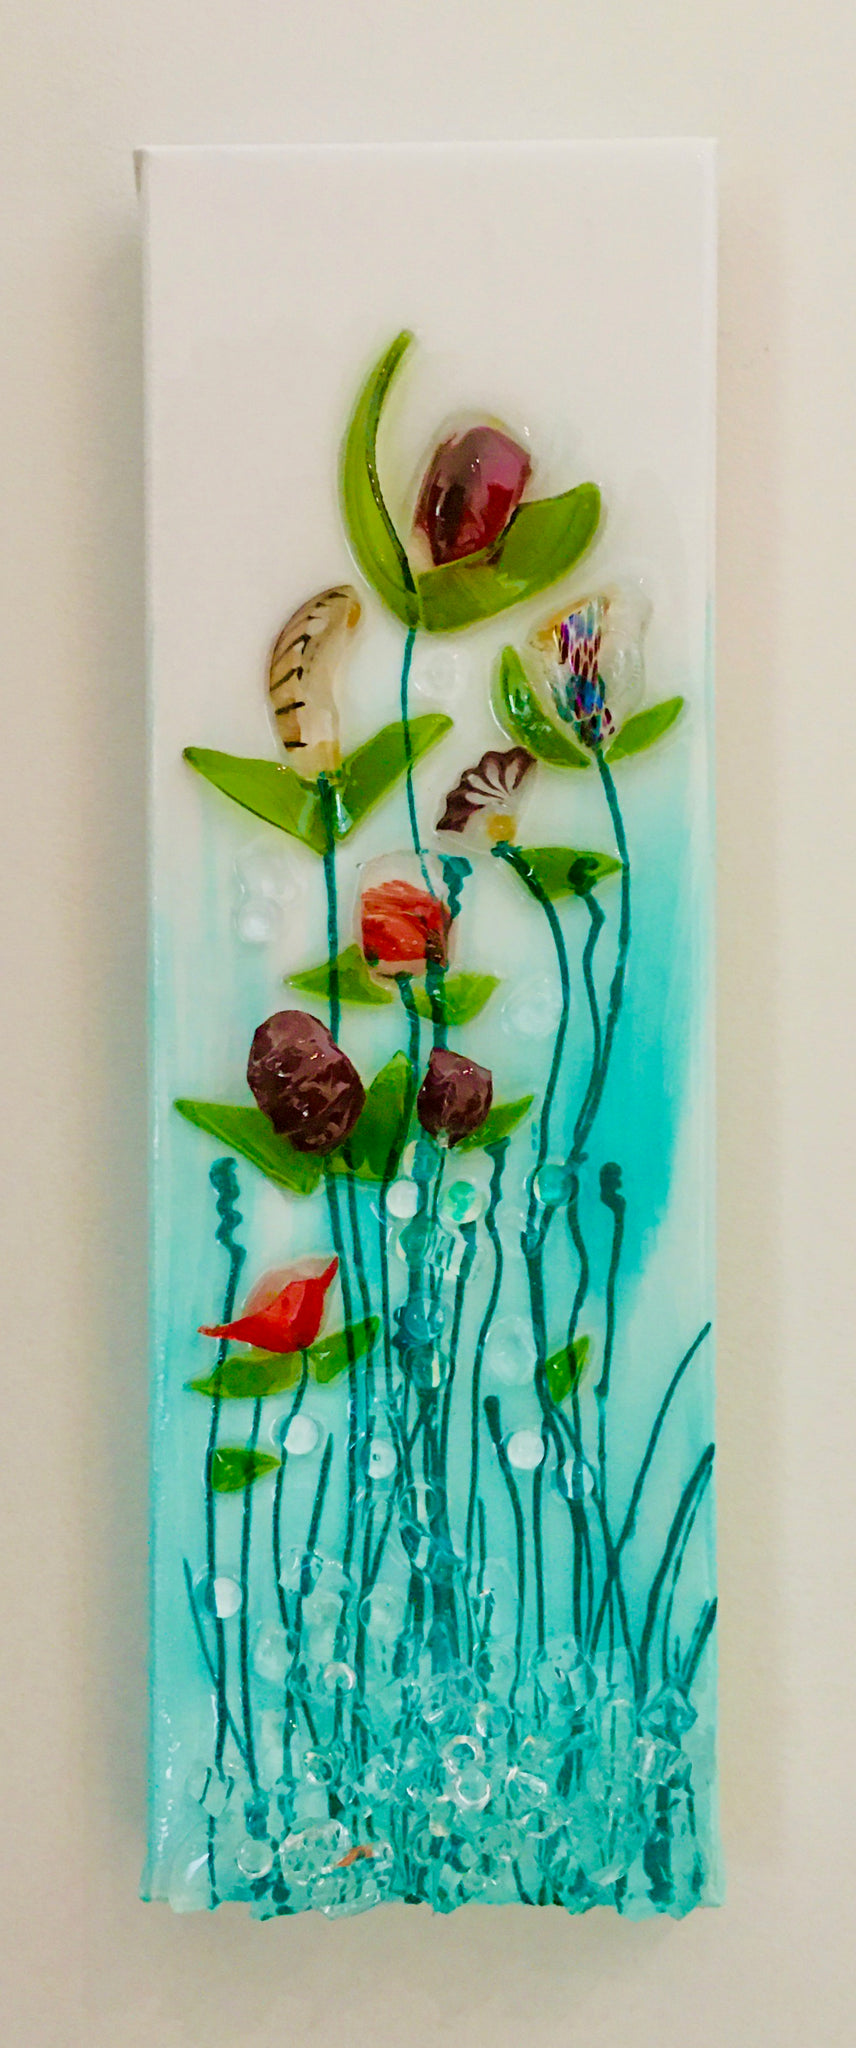 "4"" x 12"" Green Glass Flower Canvas"